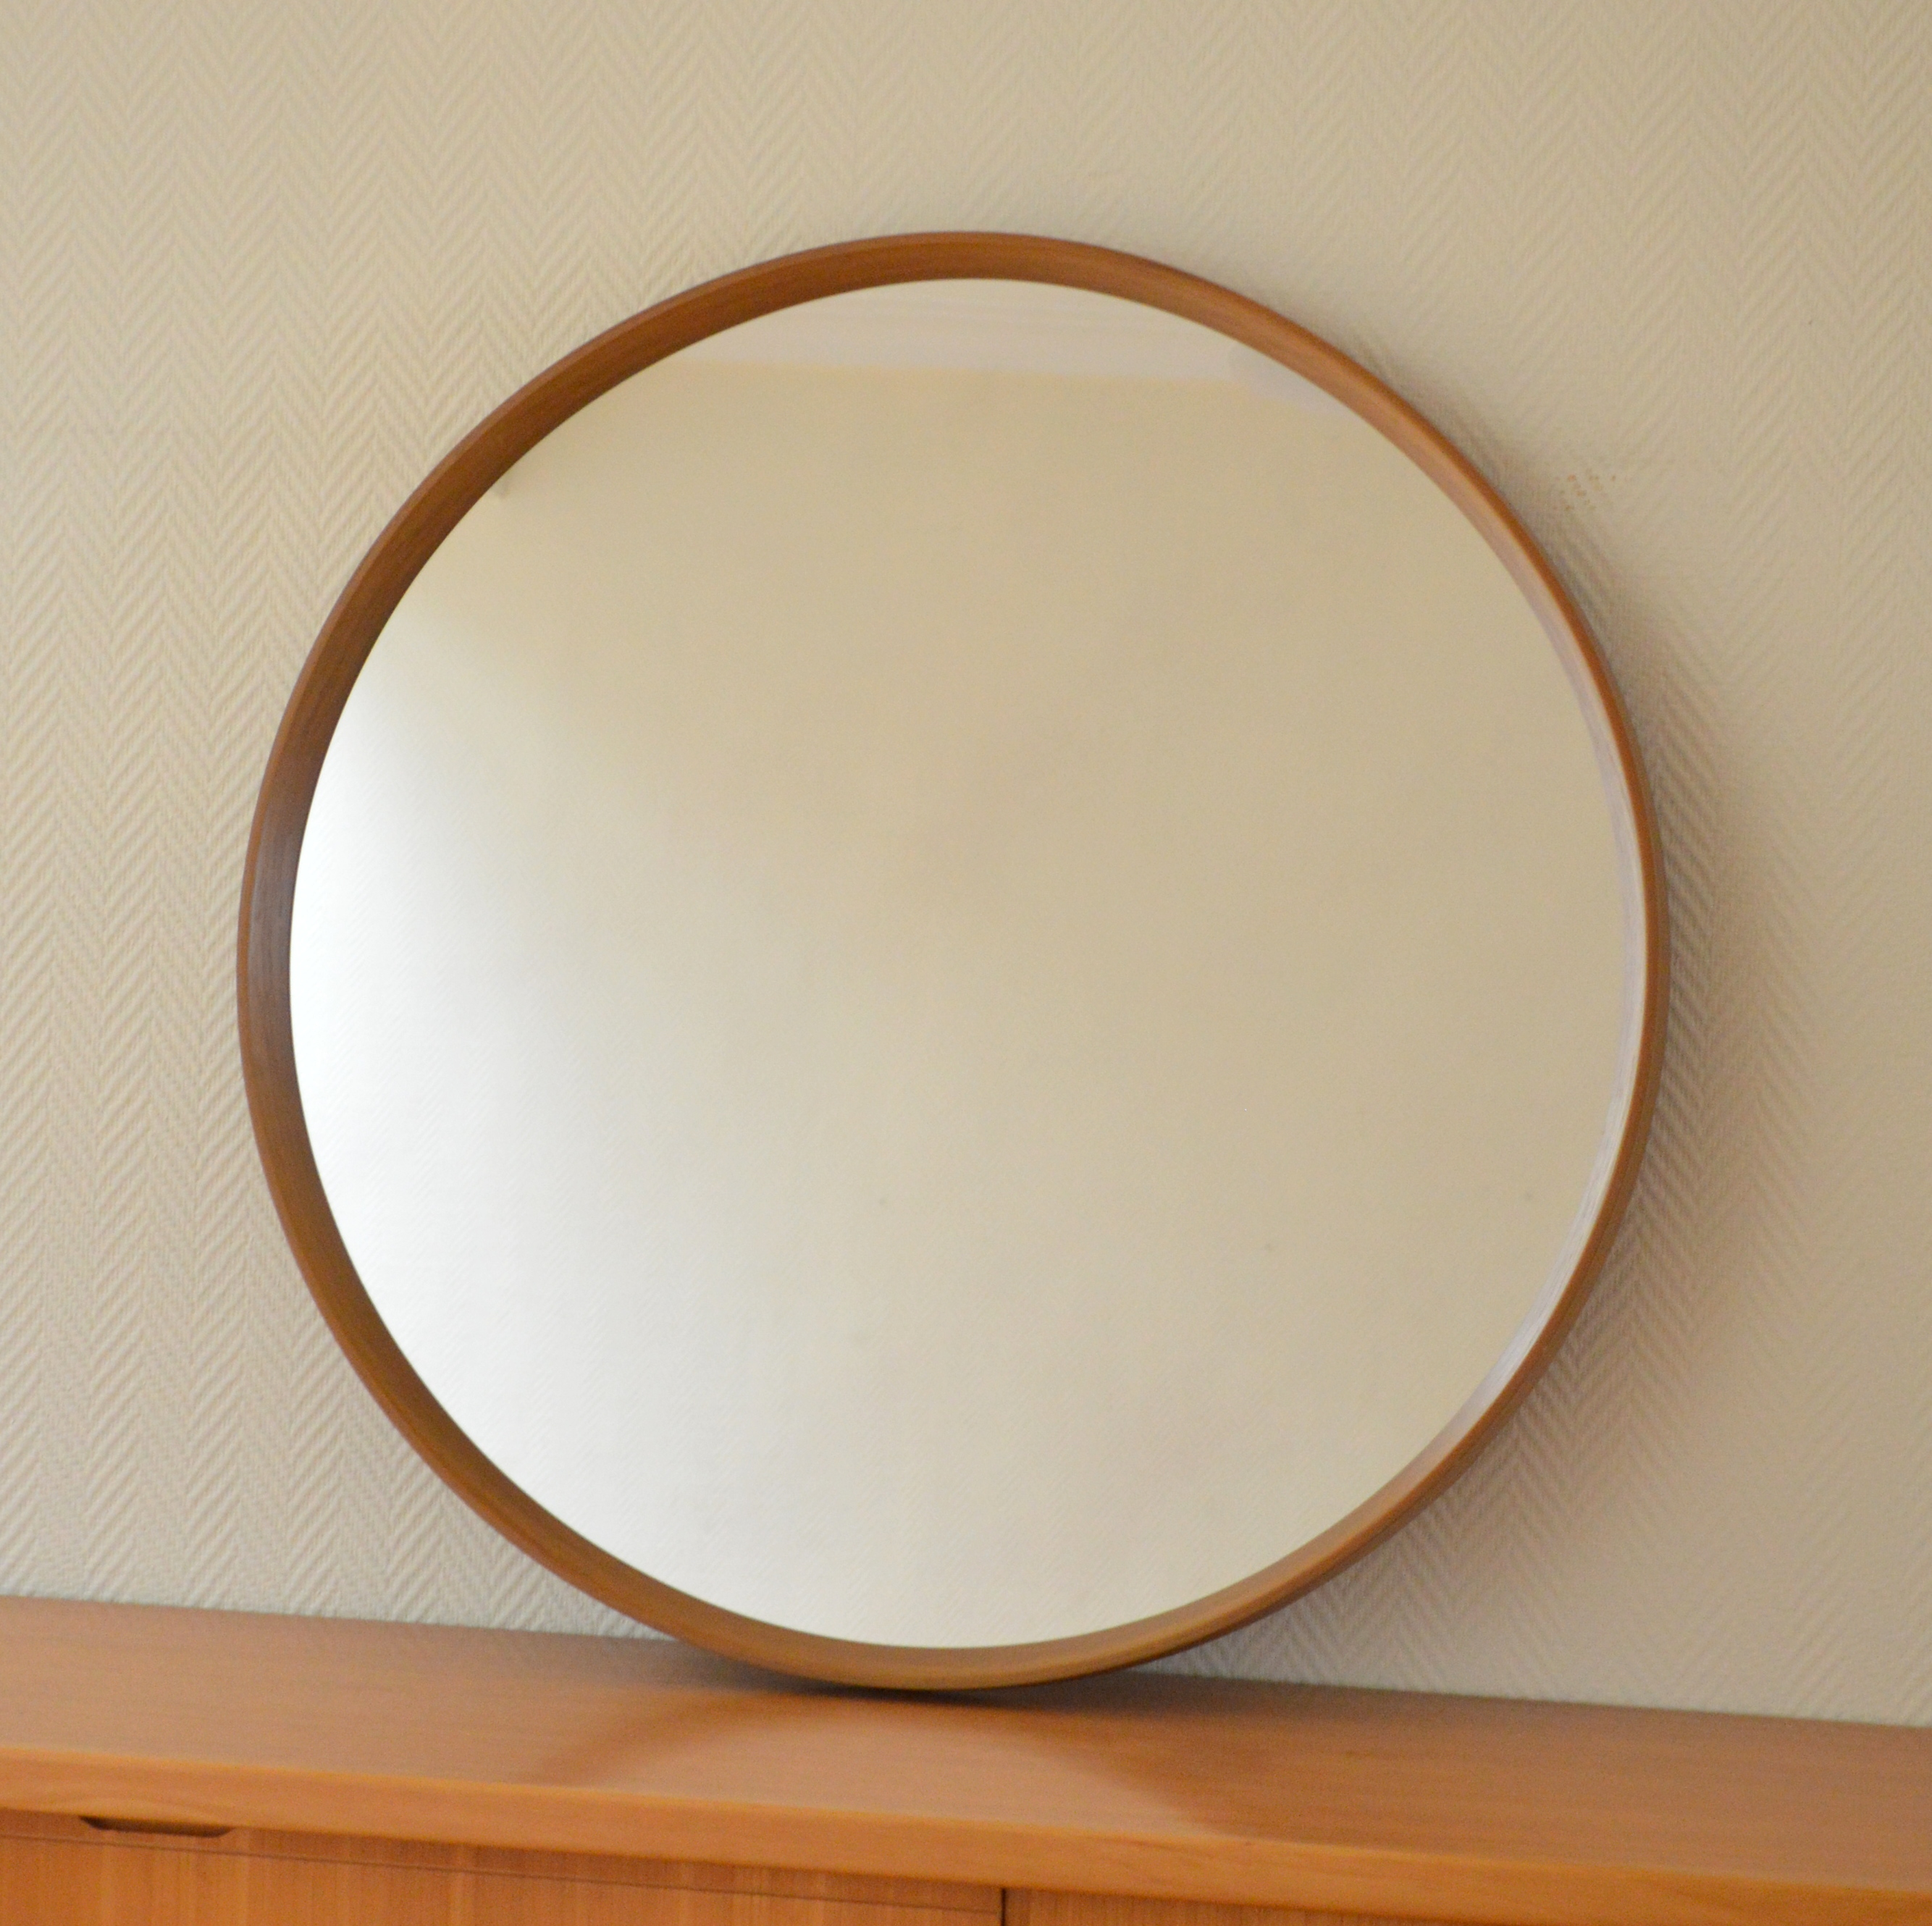 Grand miroir rond vintage for Grand miroir rond design